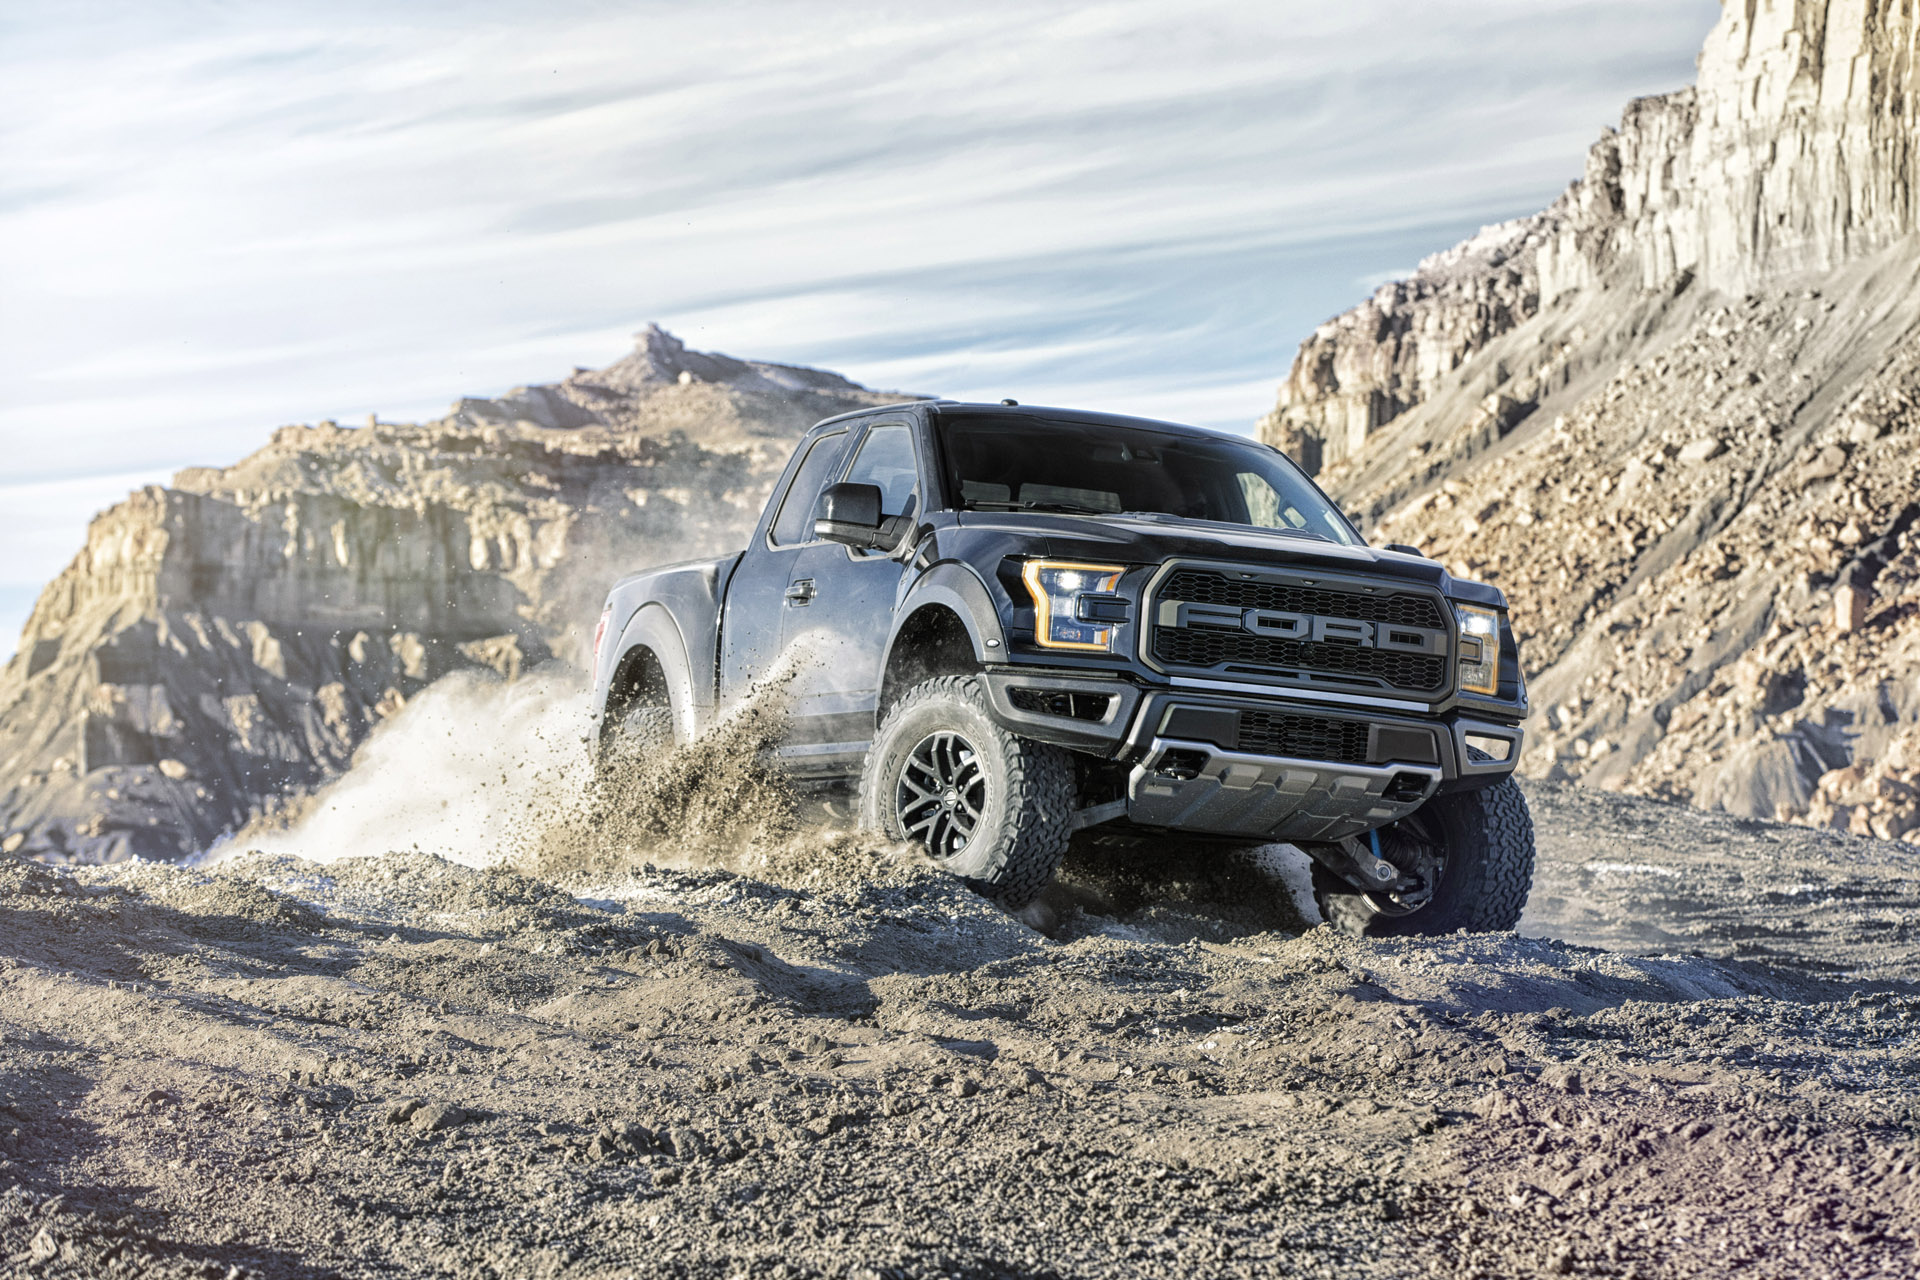 The all-new Ford F-150 Raptor (SuperCab model pictured) features an available Torsen front differential that increases off-road grip significantly for the front end of the truck and allows it to pull itself over obstacles and up steep grades – even when traction is split between the front tires.